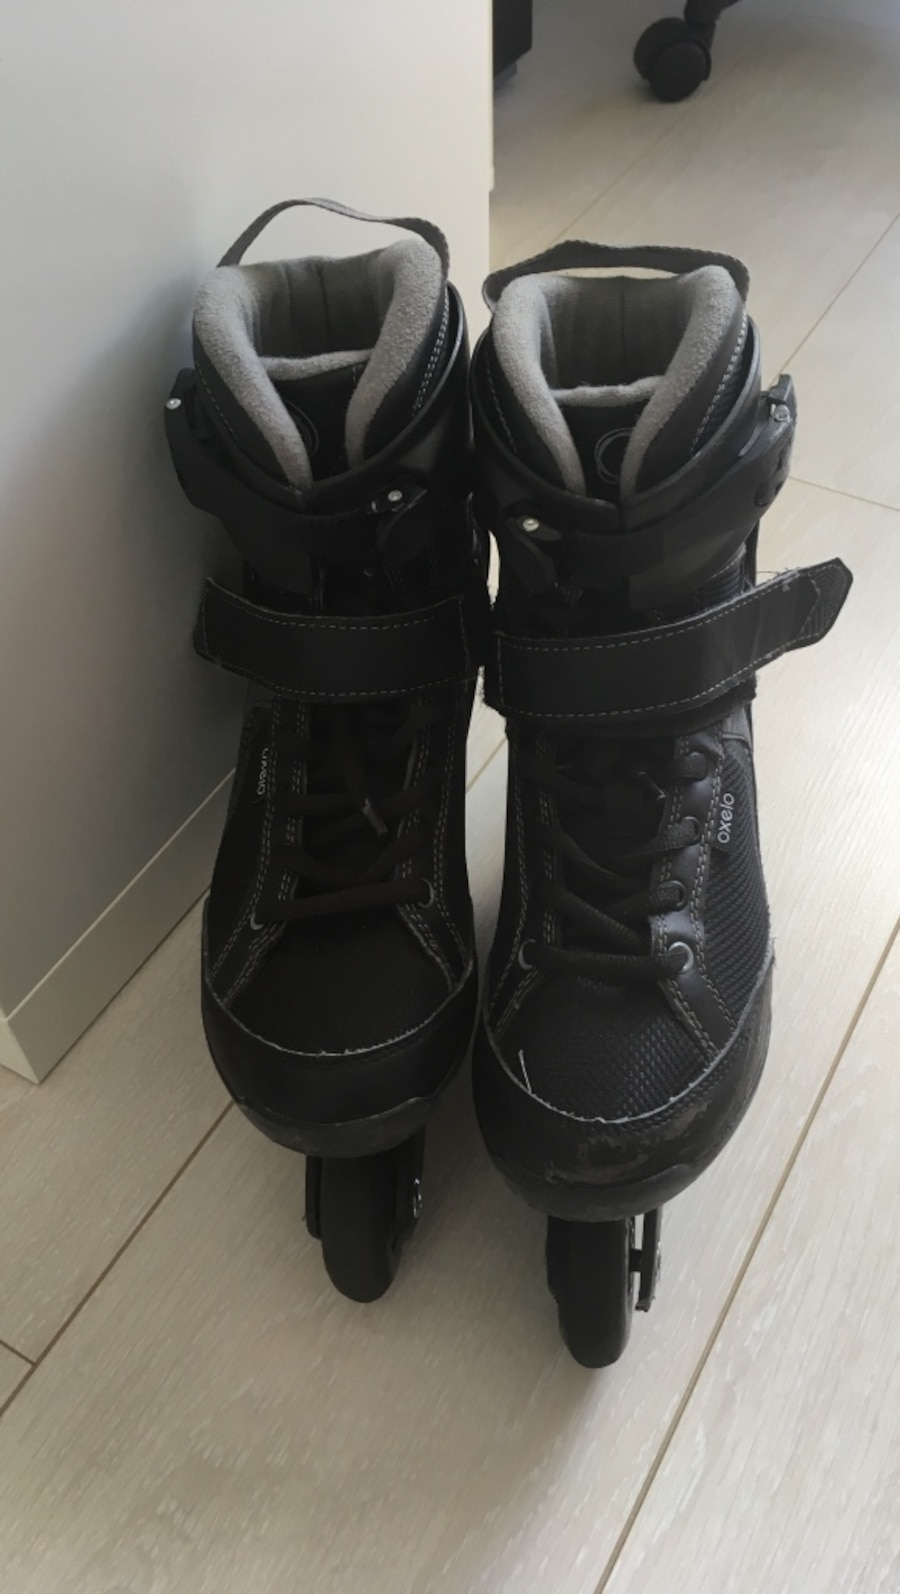 Roller oxelo fit 3